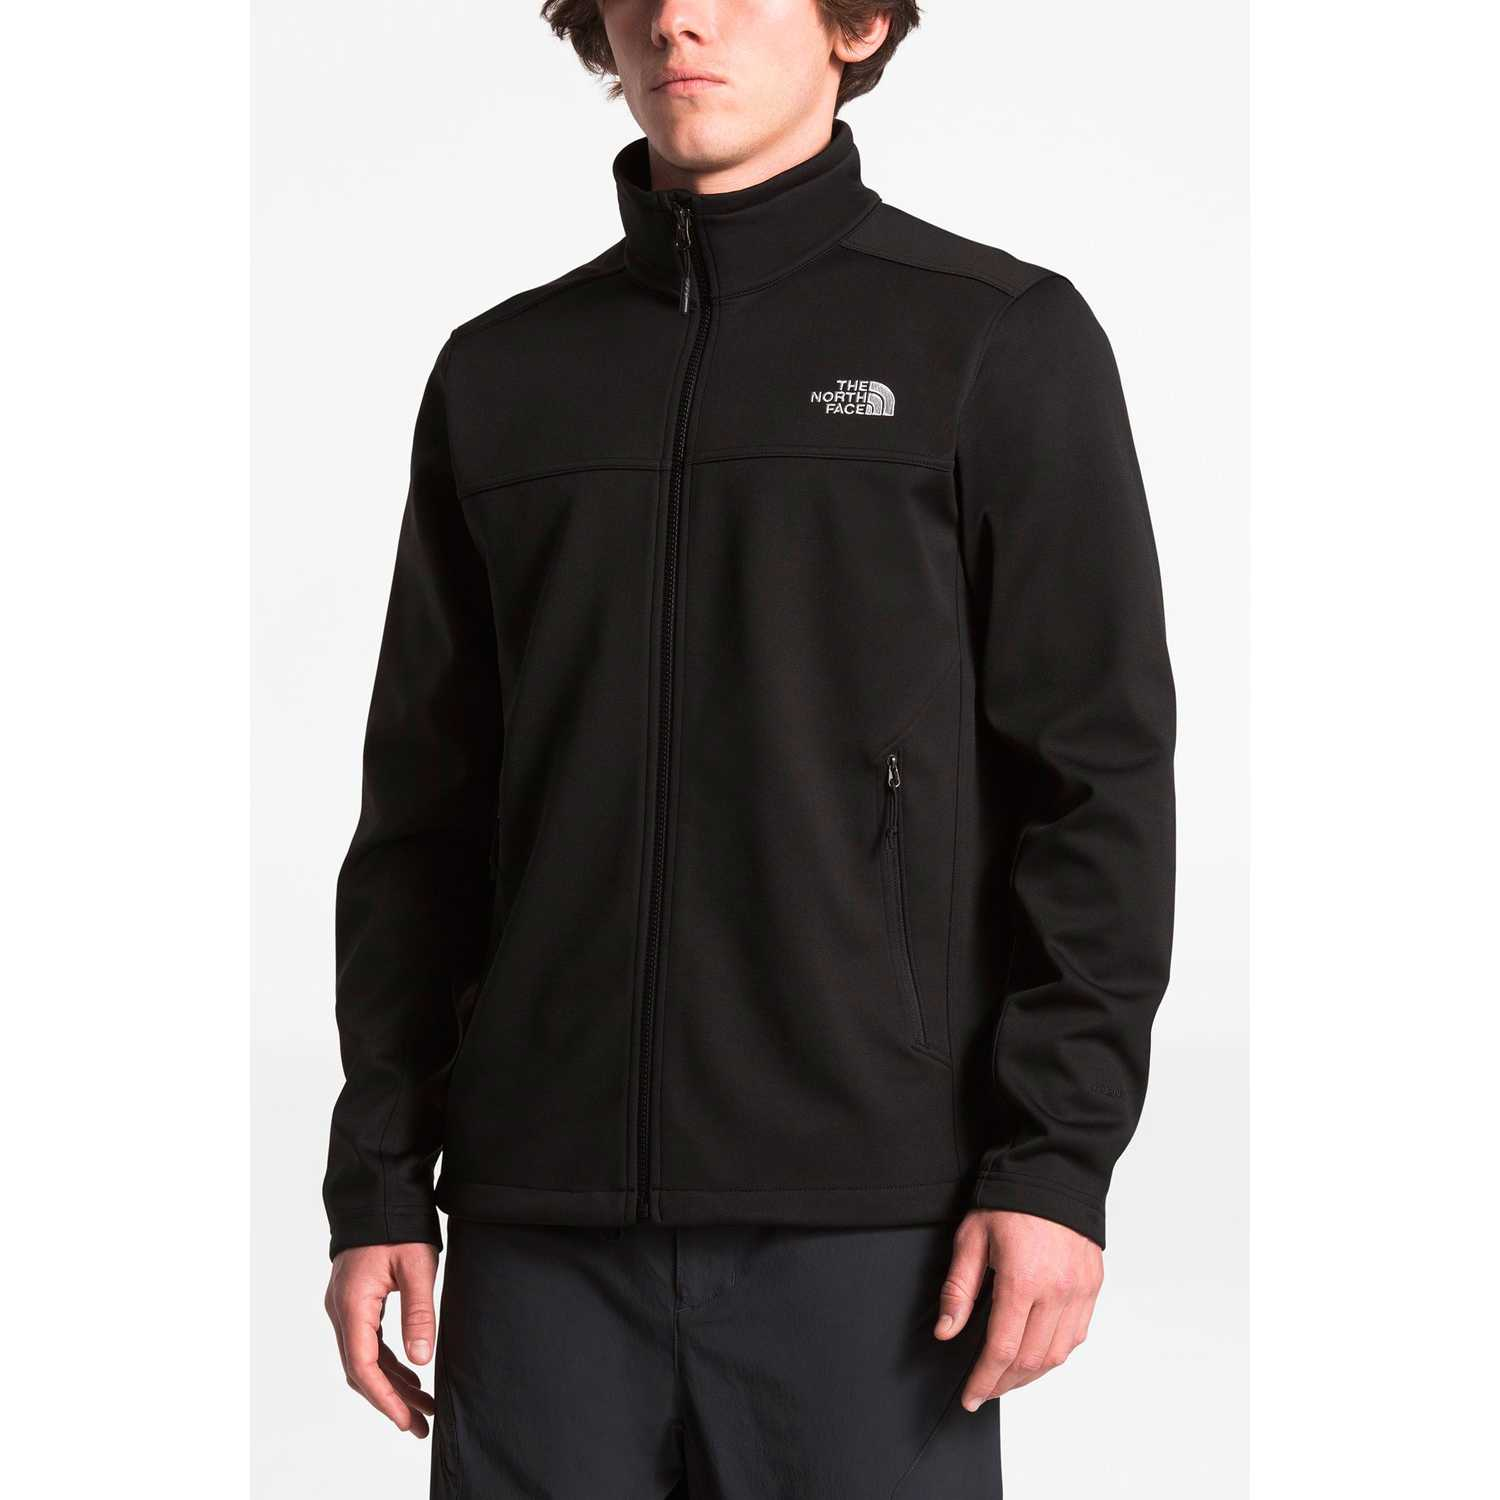 The North Face m apex canyonwall jacket Negro Rompevientos